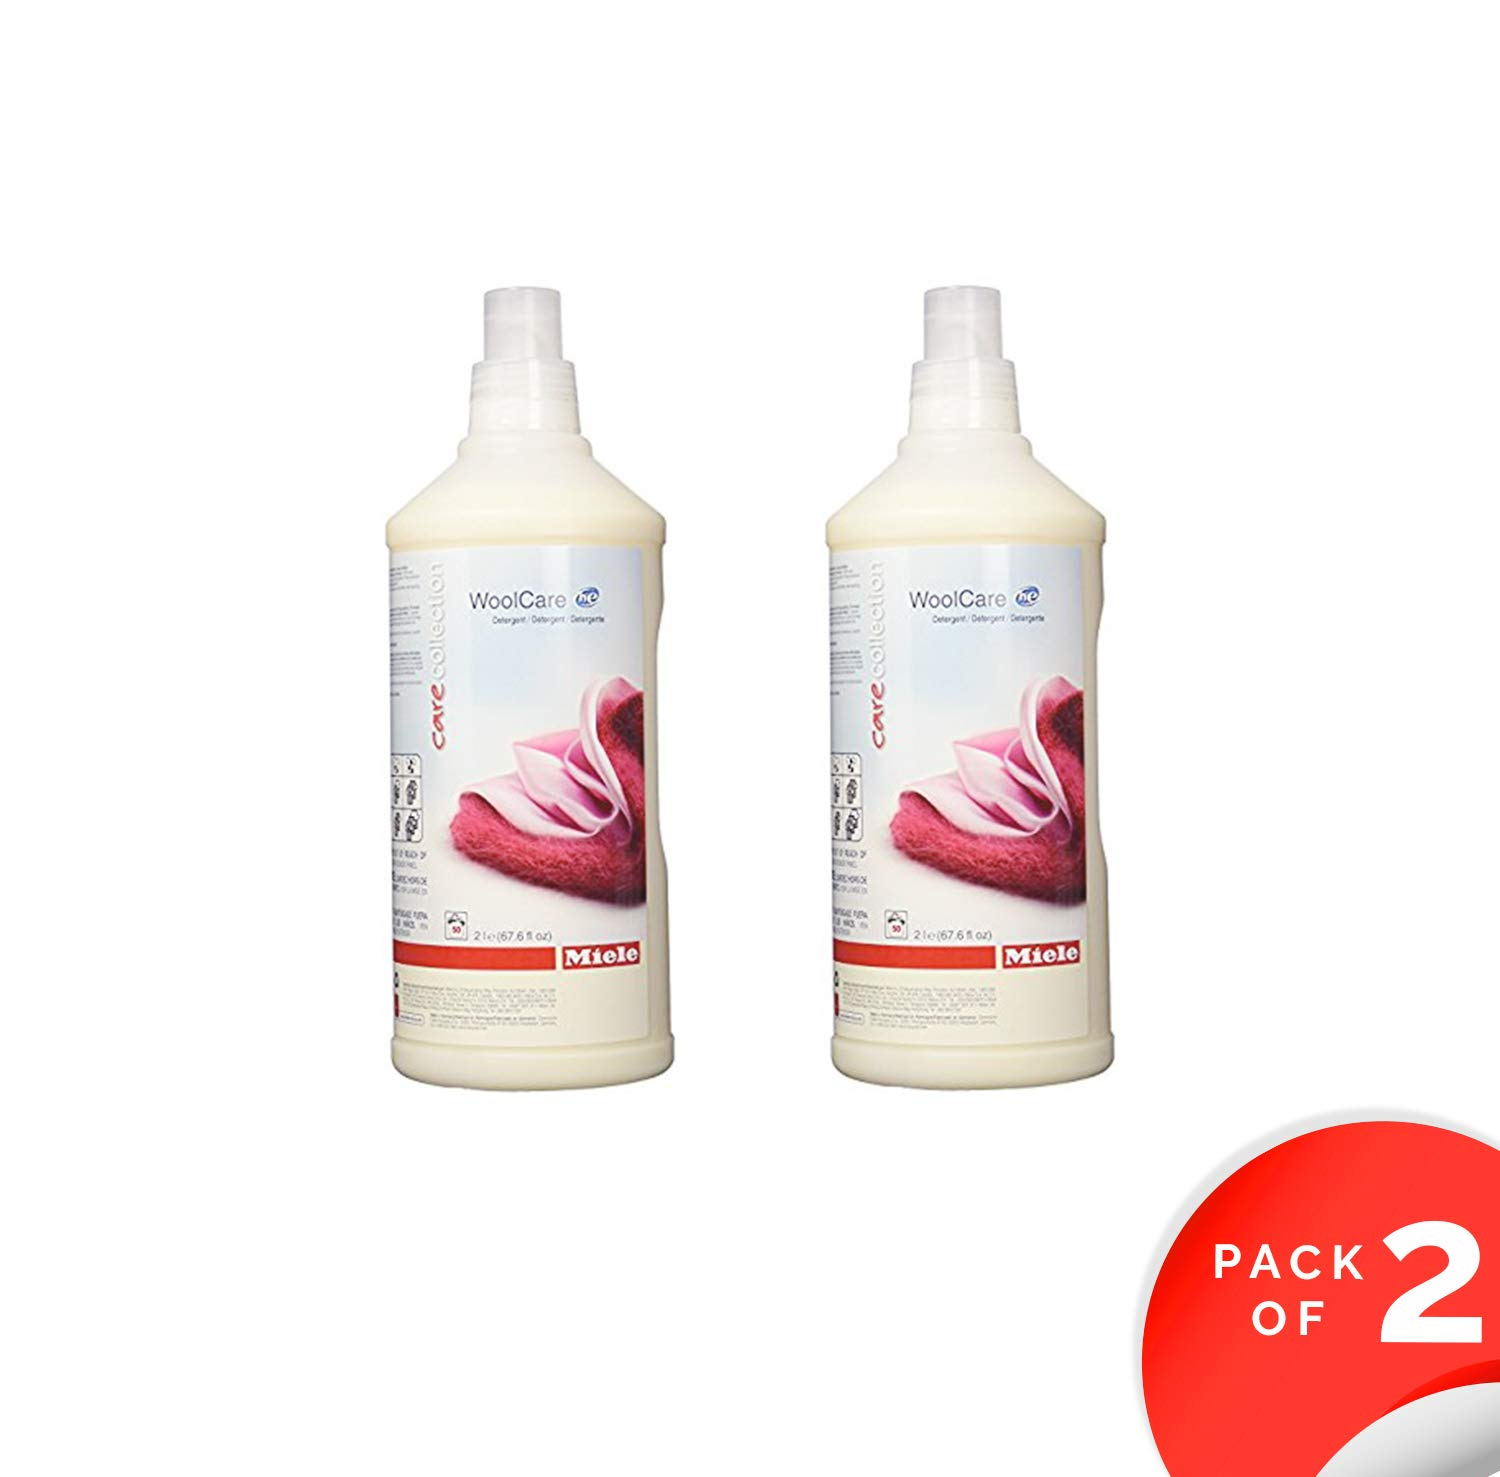 Miele Care Collection HE Wool Care For Woolens, Delicates and Silks - 50.72 fluid ounces (1.5 Litres) (2)